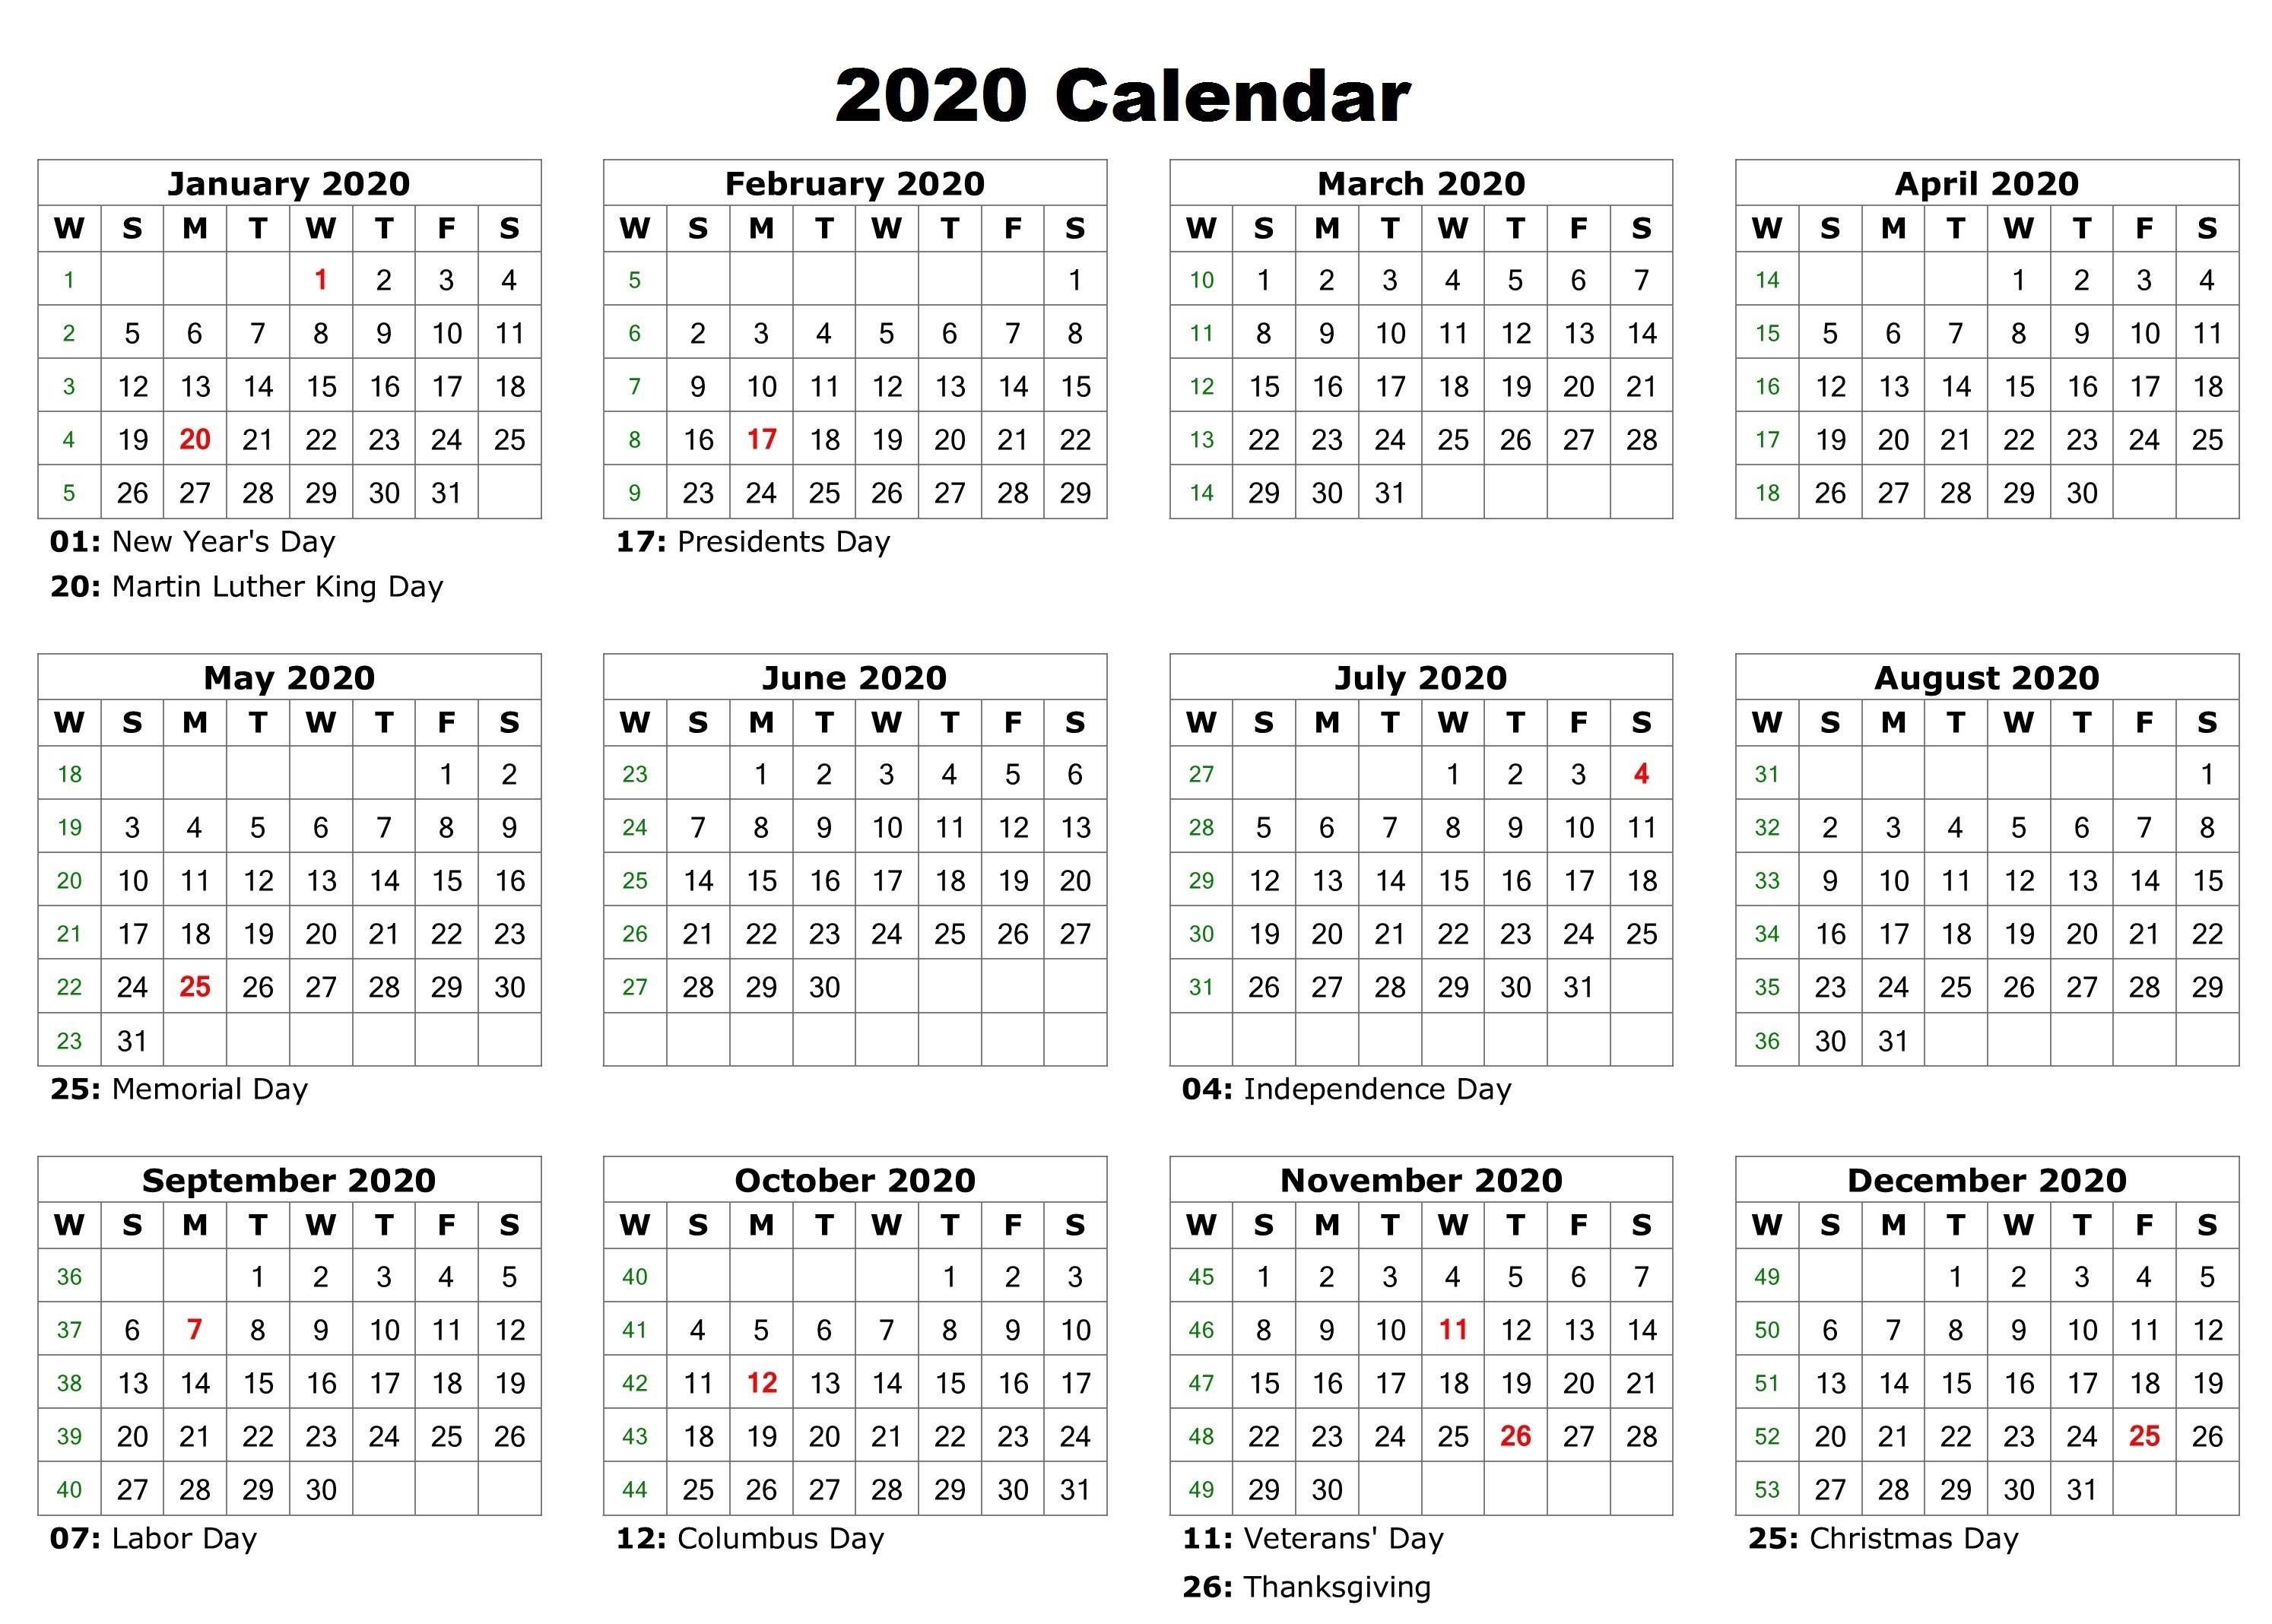 Free 12 Month 2020 Calendar With Holidays  Jackby  Medium within Printable 12 Month 2020 Calendar